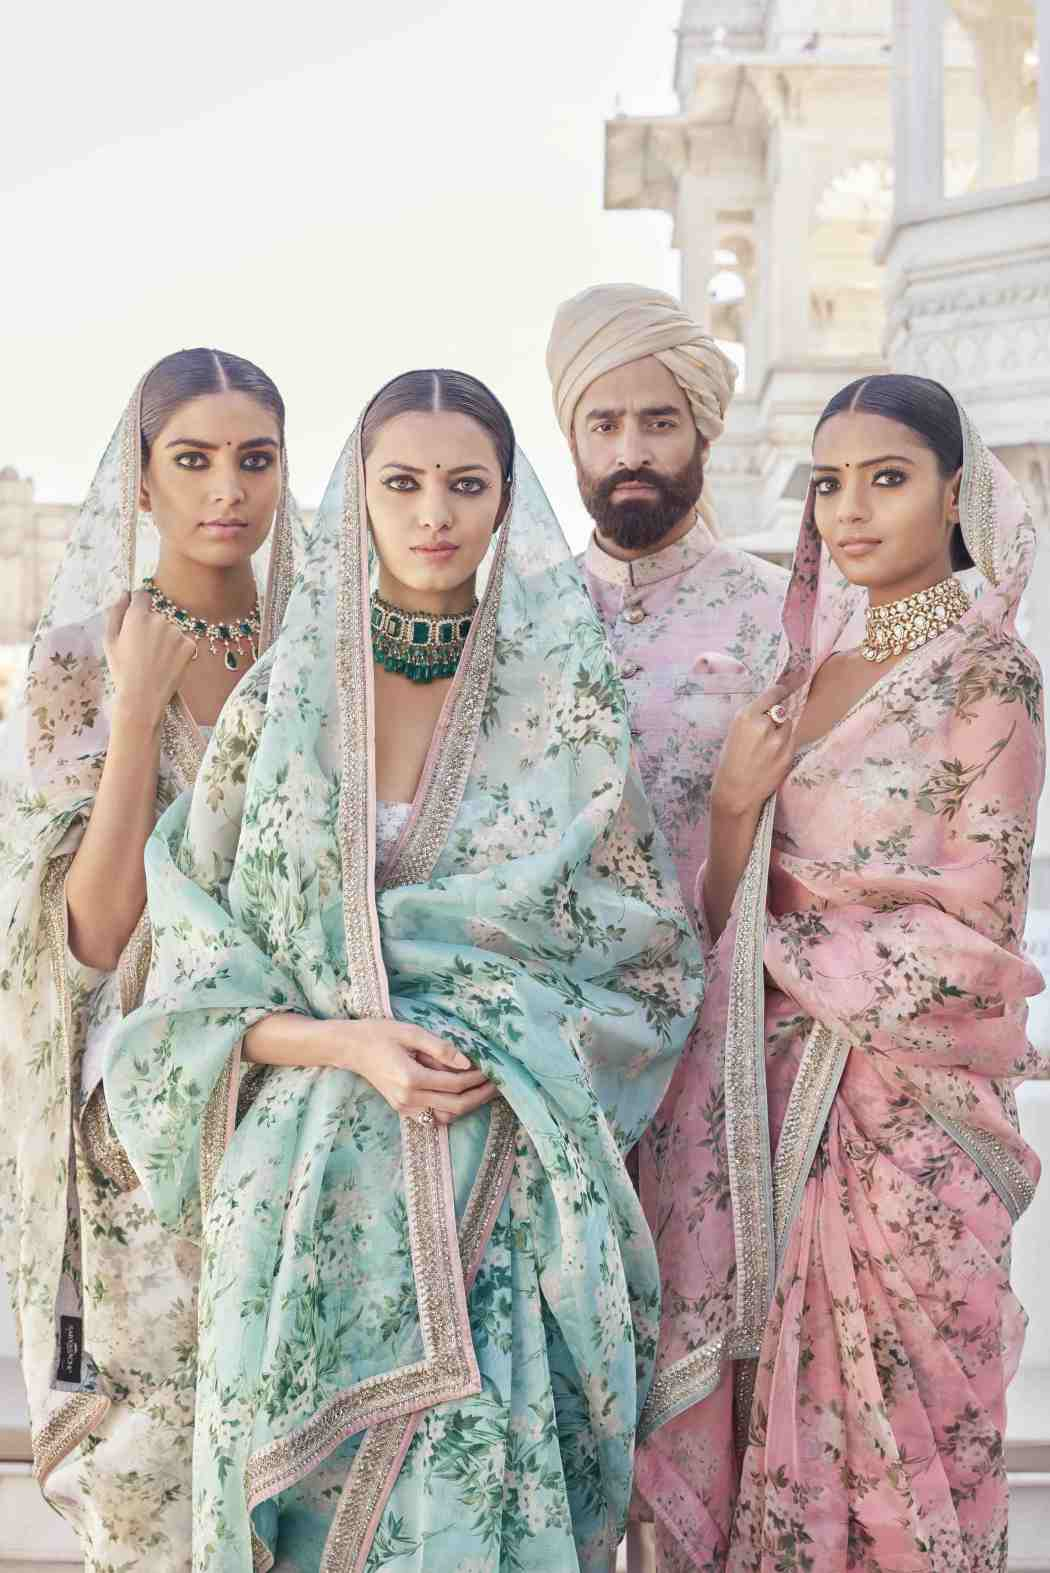 Indian fashion luminary, Sabyasachi, among leading couturiers